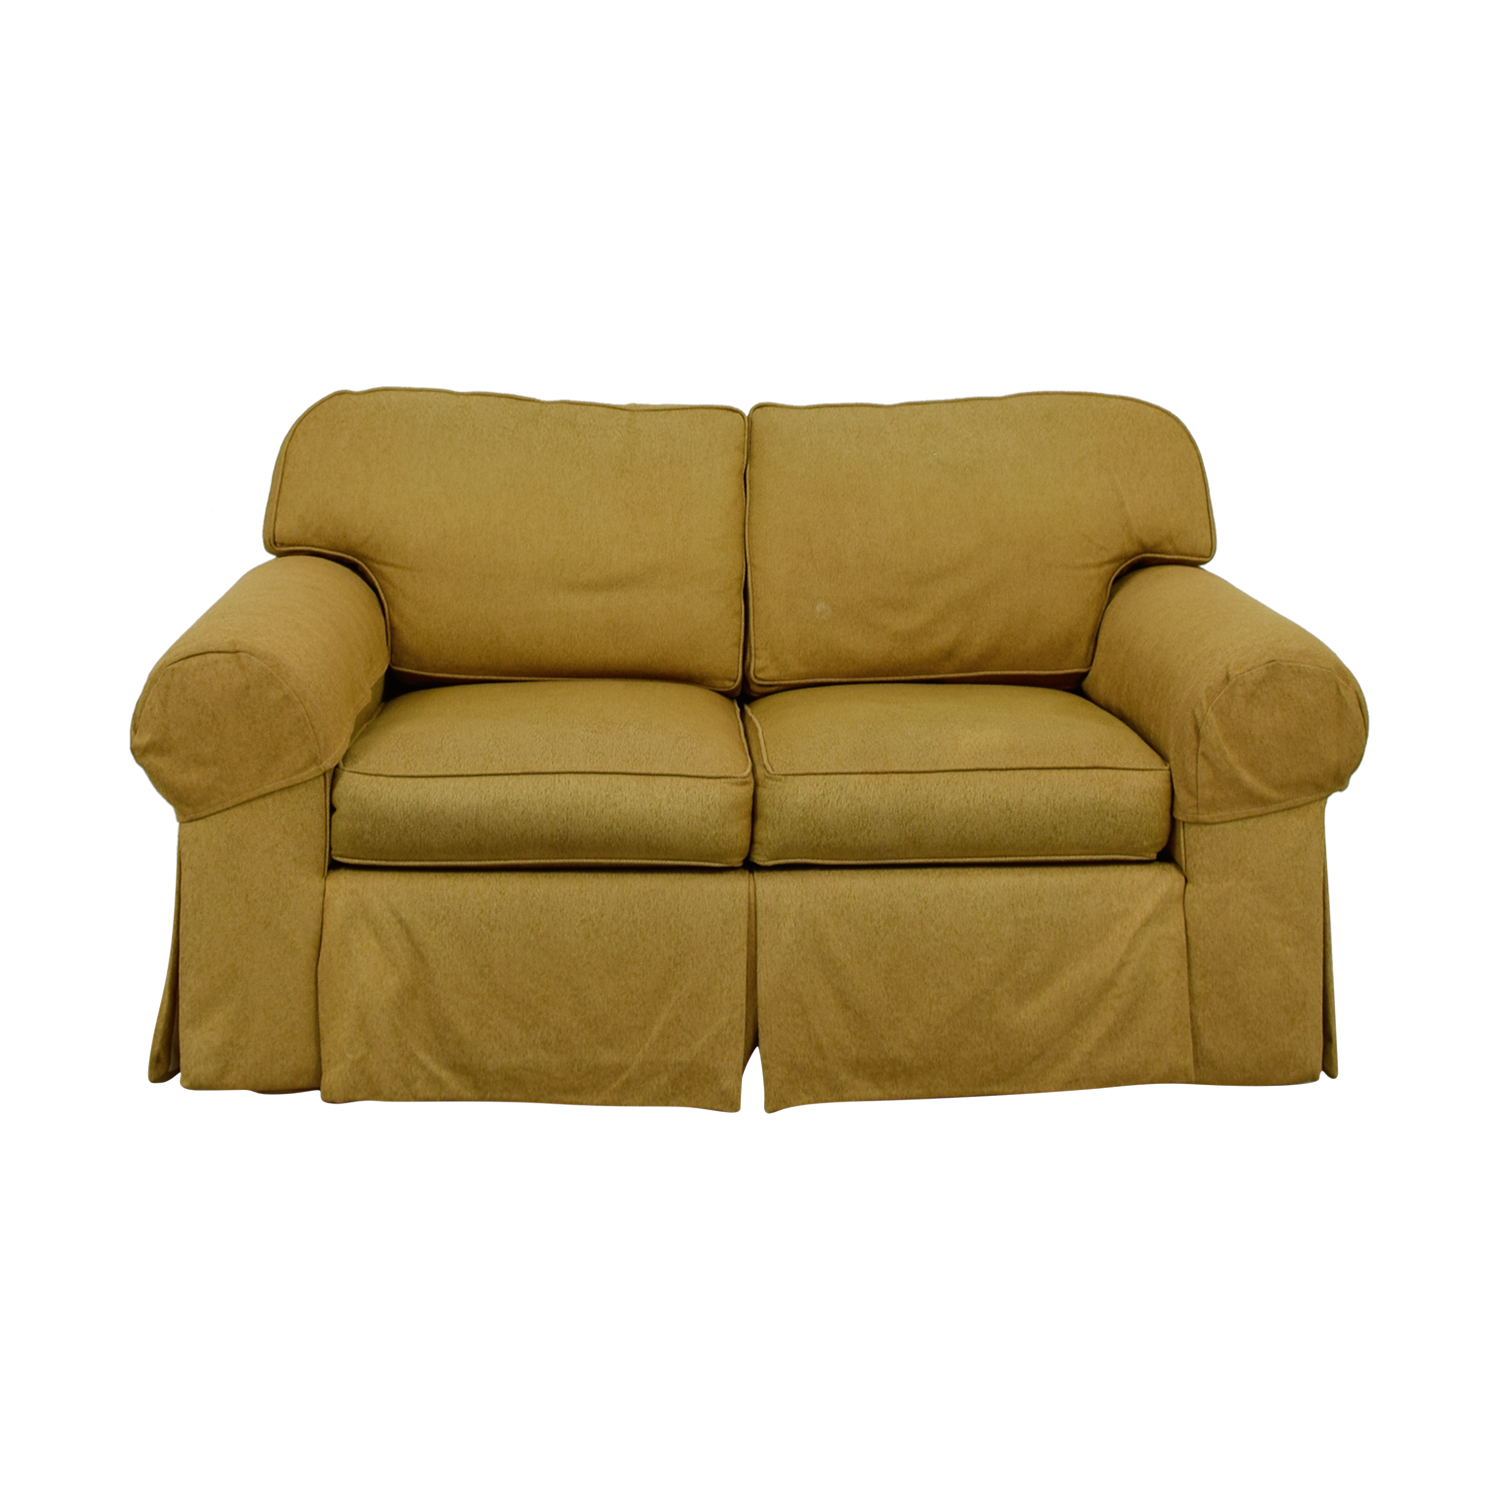 Ethan Allen Ethan Allen Tan Two-Cushion Love Seat on sale